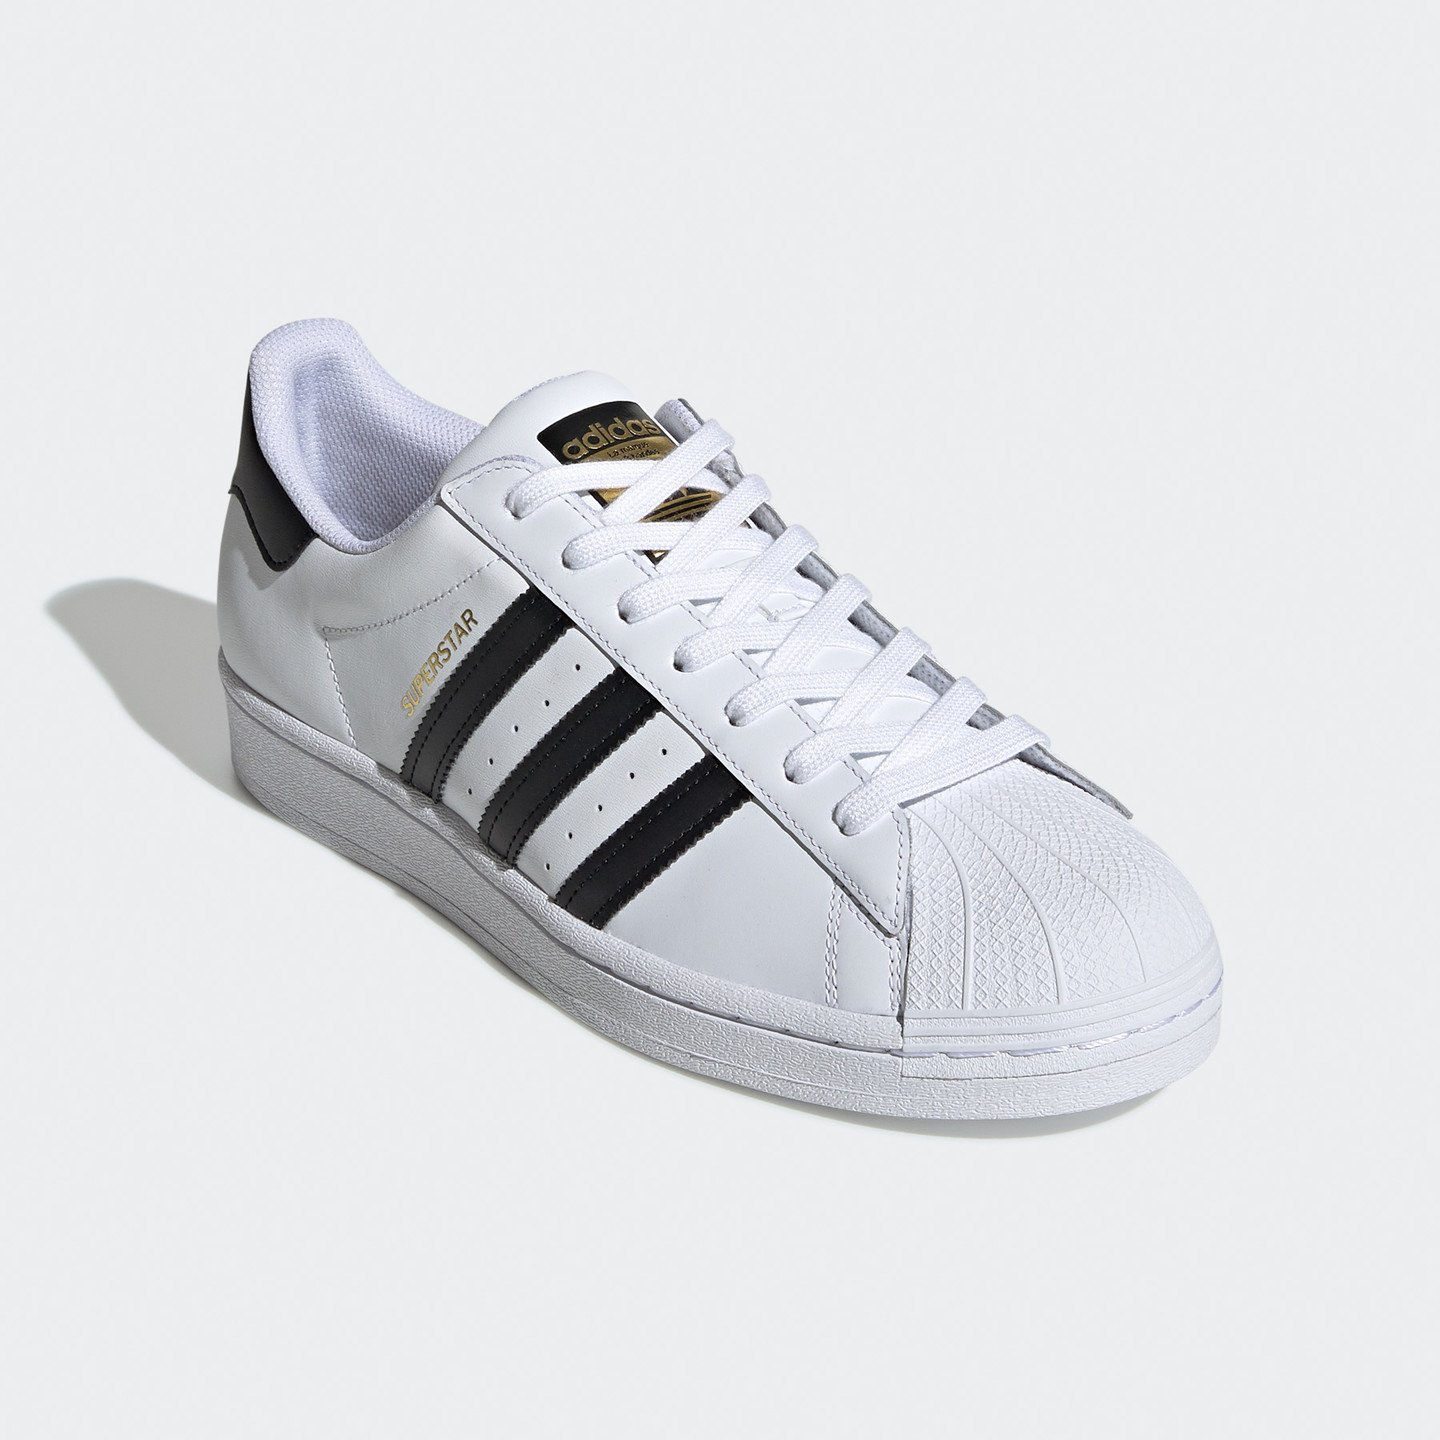 Adidas Superstar White / Core Black EG4958